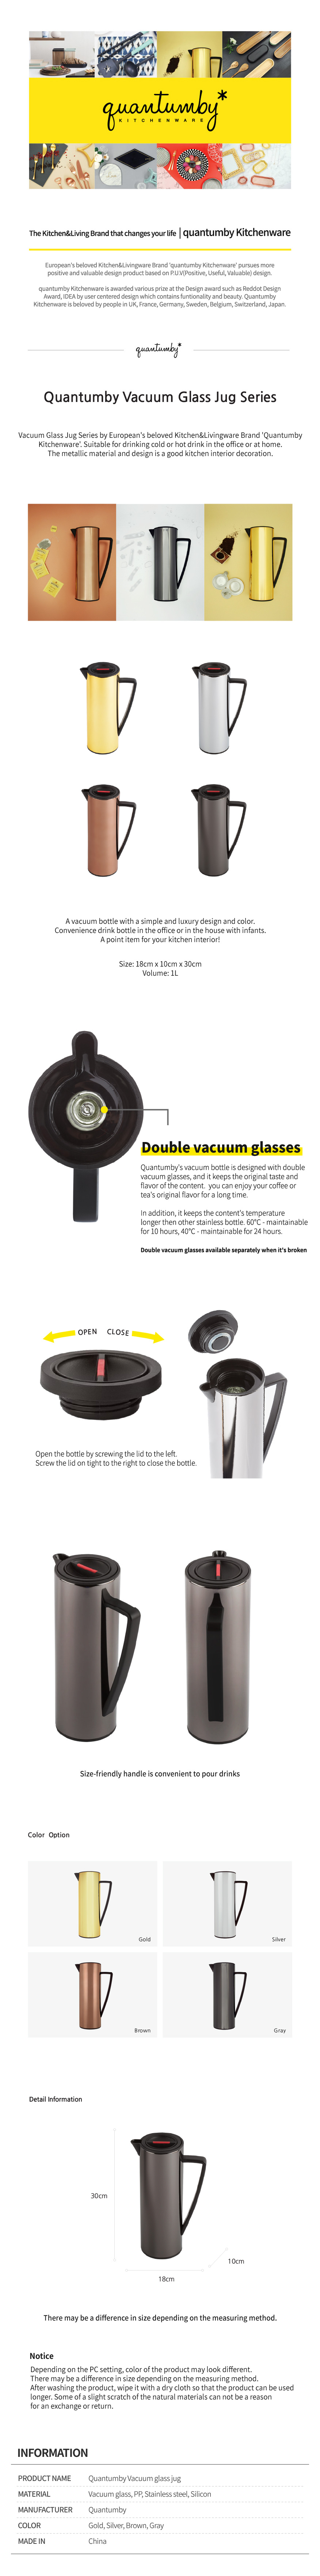 [Quantumby] Glass Vacuum Bottle 4 colors